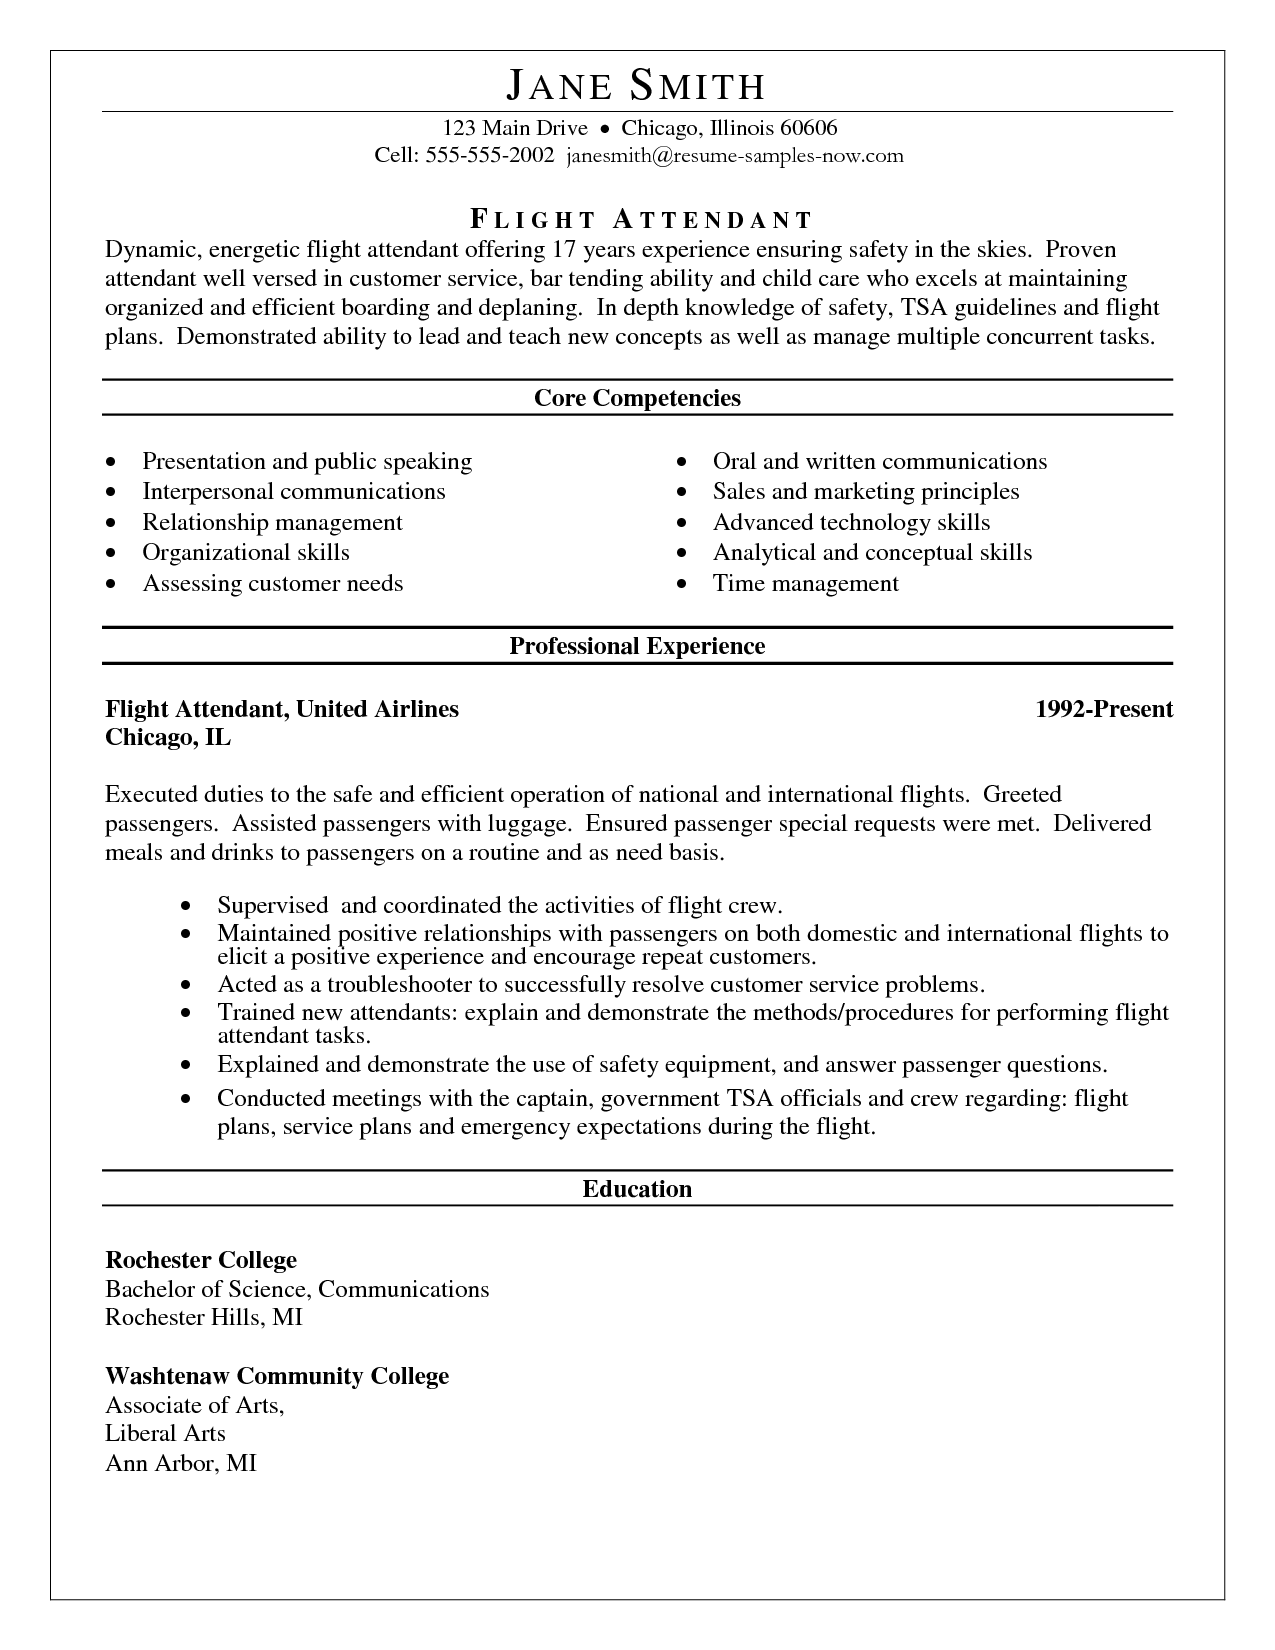 cv description competence